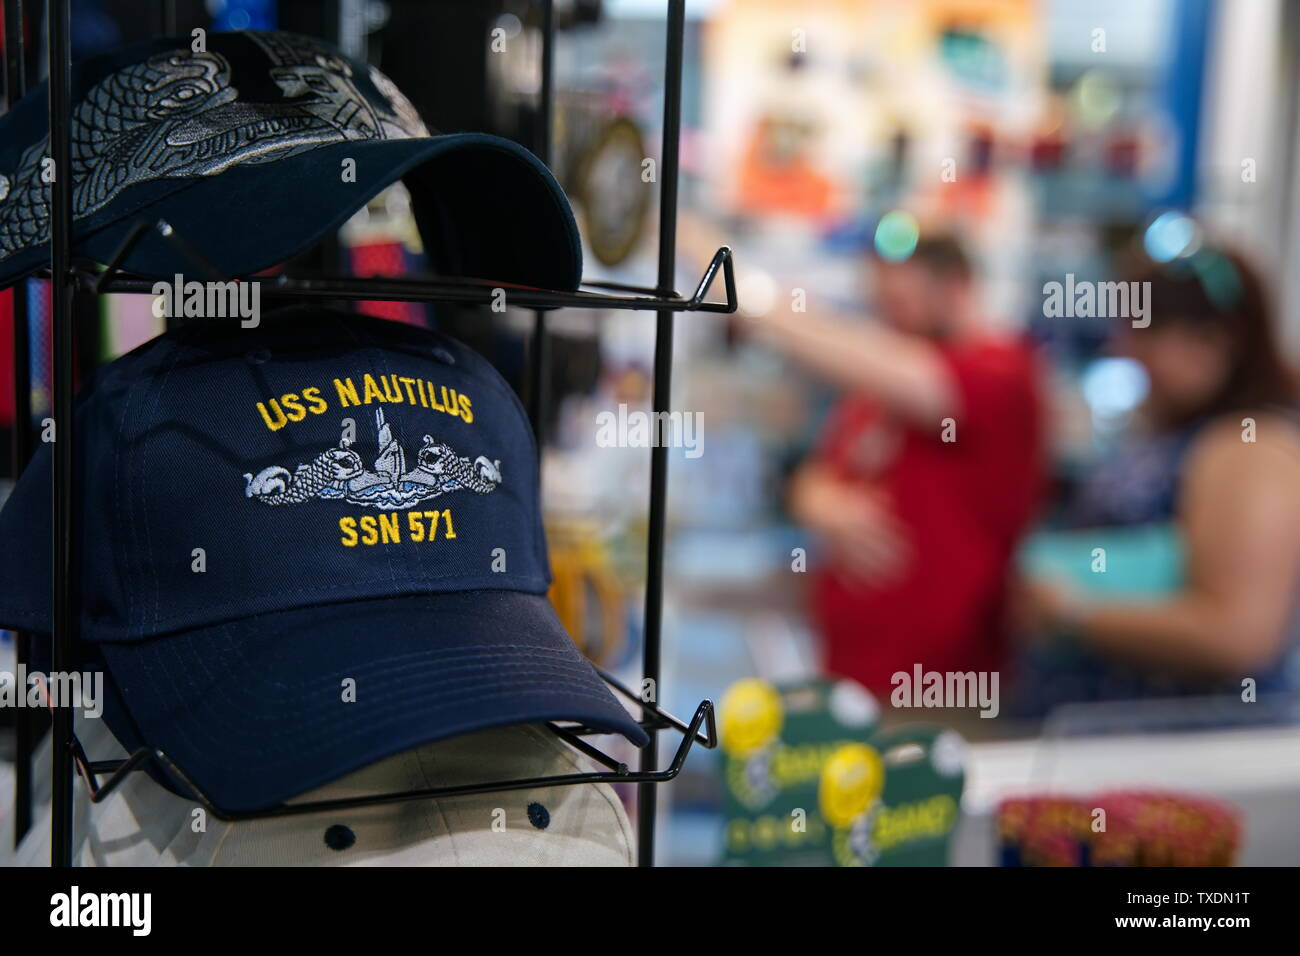 Submarine Force Museum, Groton CT USA, Jun 2019. The museum gift store has many souvenirs and memorabilia of an era of great defense accomplishments. - Stock Image